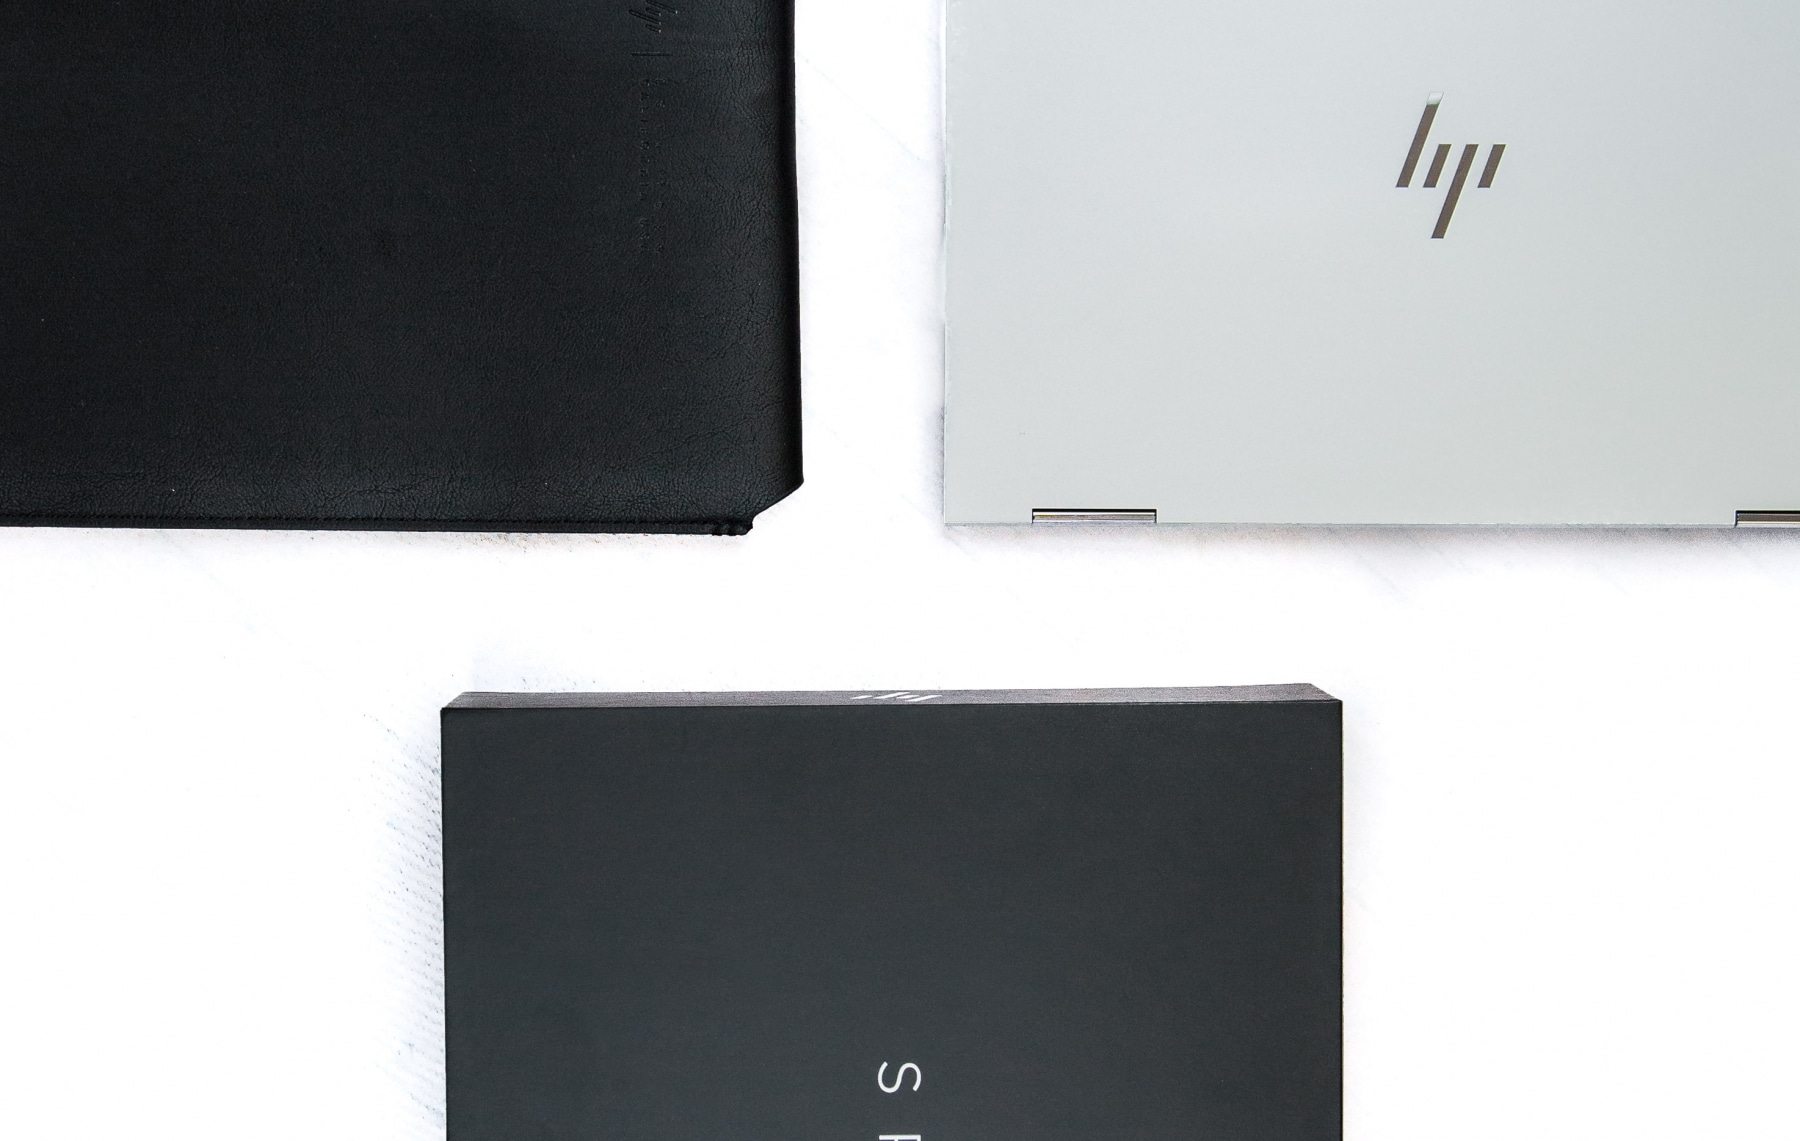 hp spectre x360 convertible laptop and leather box